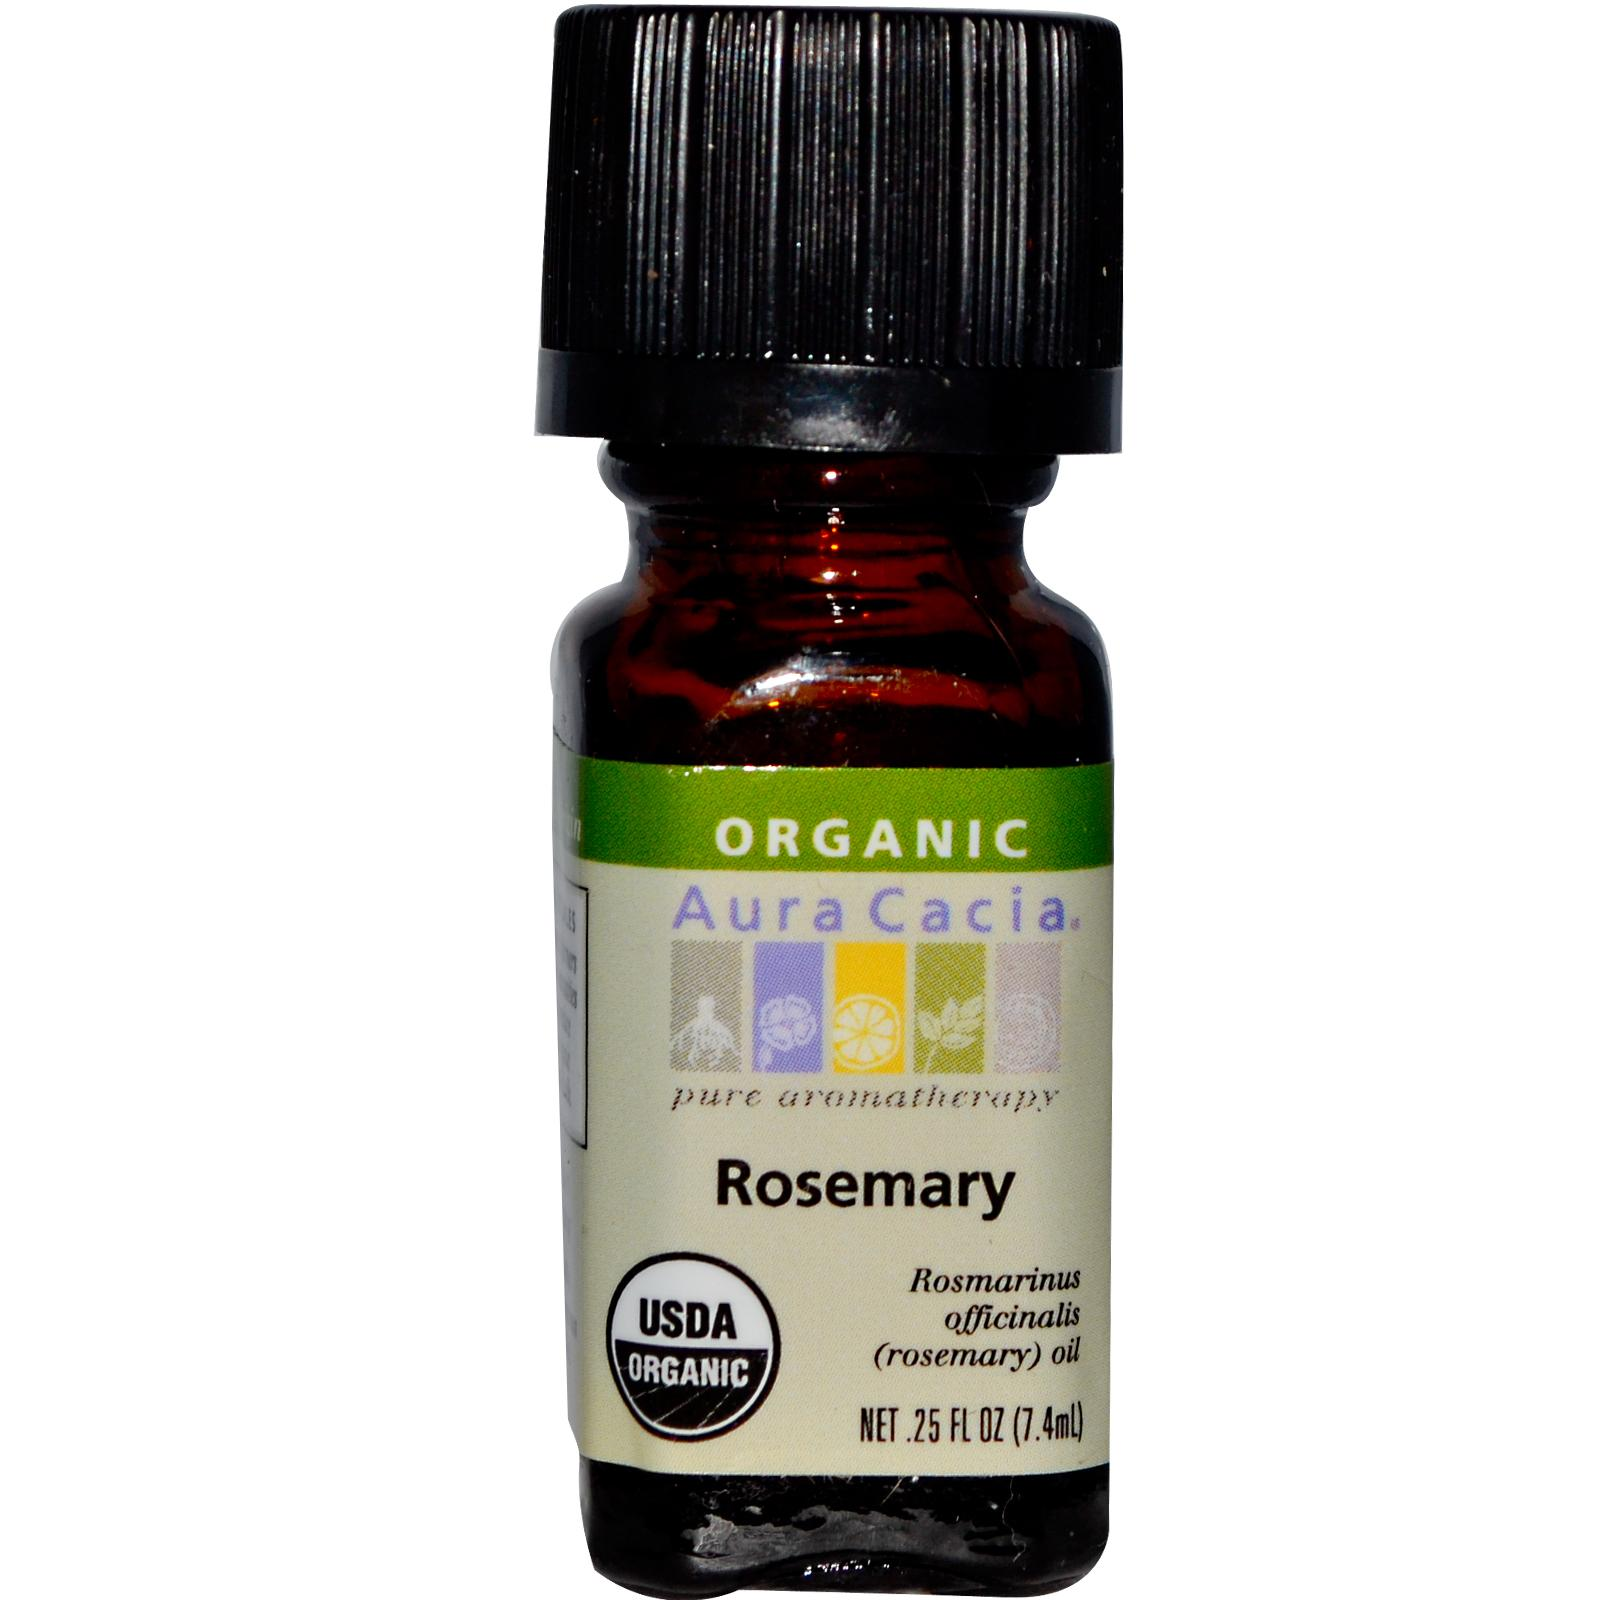 Organic Essential Oil - Aura Cacia - Rosemary aromatherapy, essential oil, organic, all natural, aura cacia, certified, doTerra,  therapeutic grade, pure, rosemary,